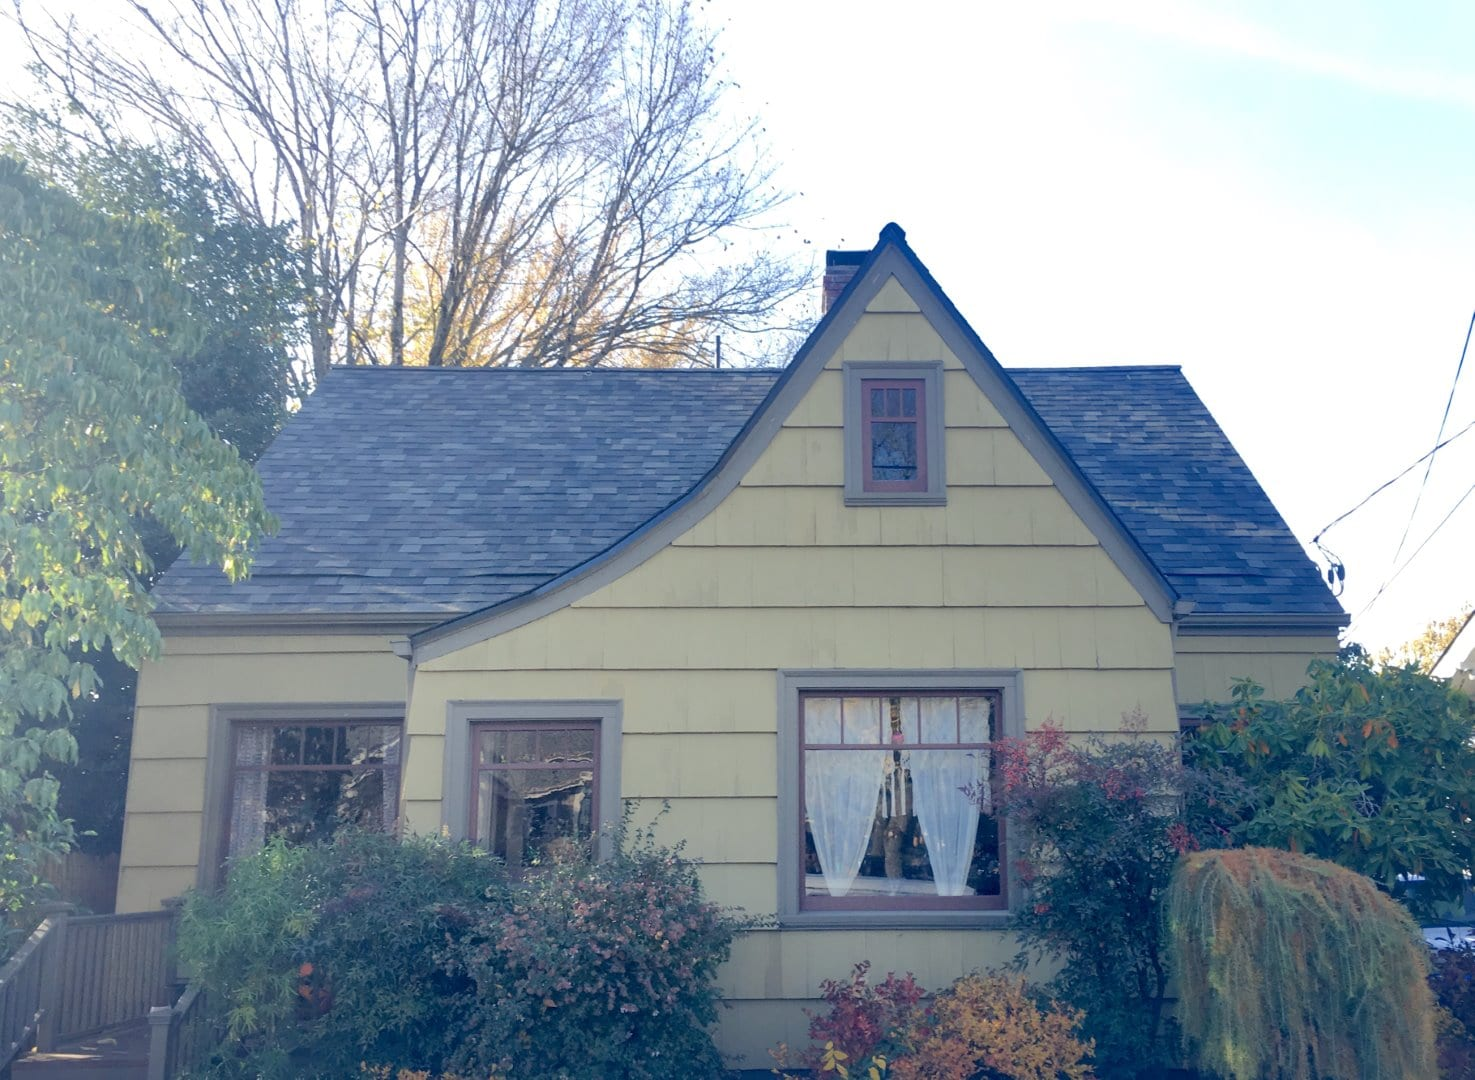 After install of New Storm Grey Shingle Roof with Extra Intake Ventilation at NE Portland home